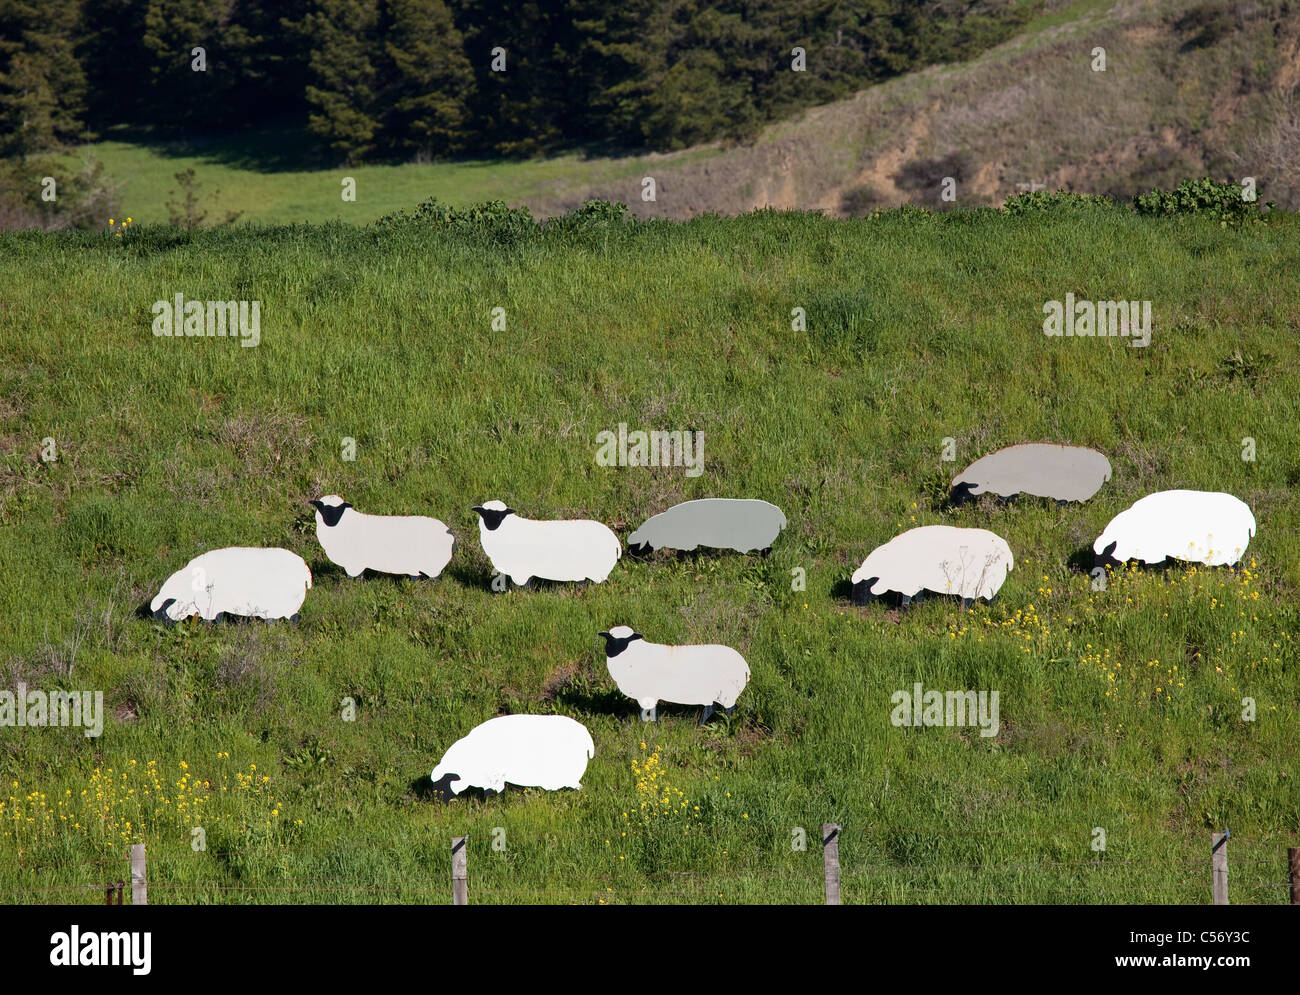 Metal cutouts of white sheep and pigs with black faces among yellow mustard flowers on grass-covered hillside in - Stock Image